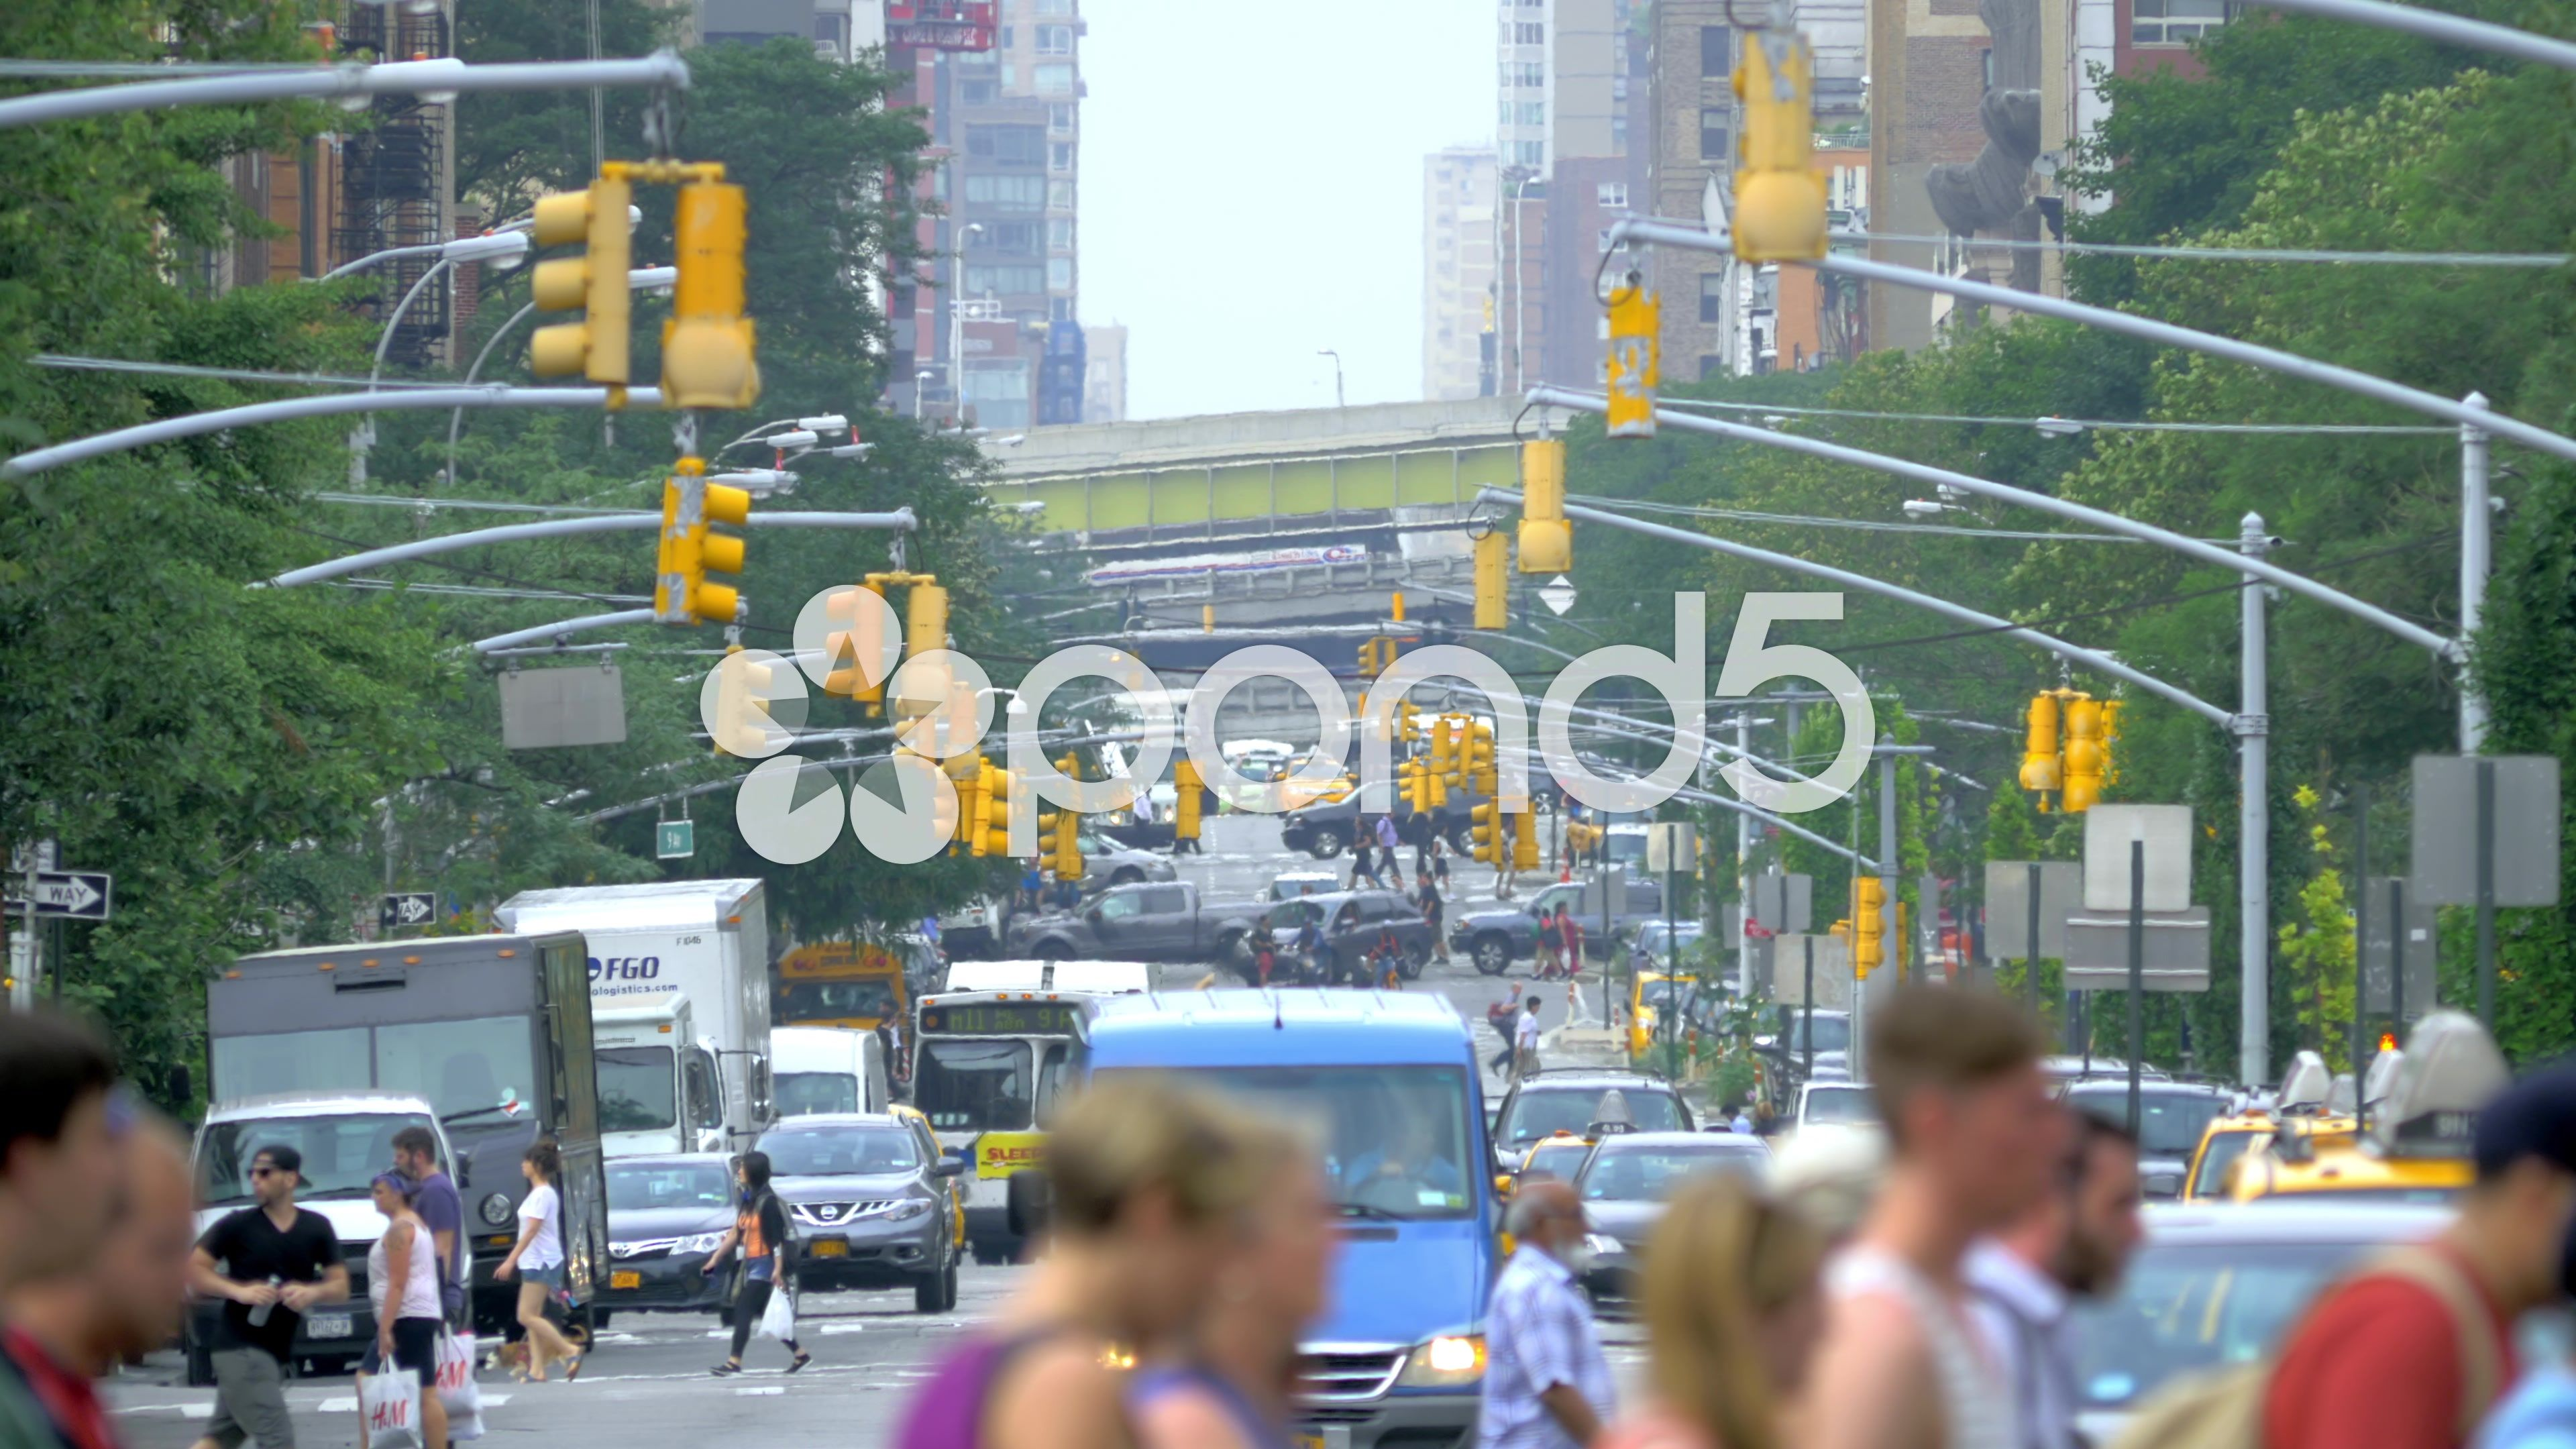 Busy Street Traffic New York City Nyc Cars Pedestrians People